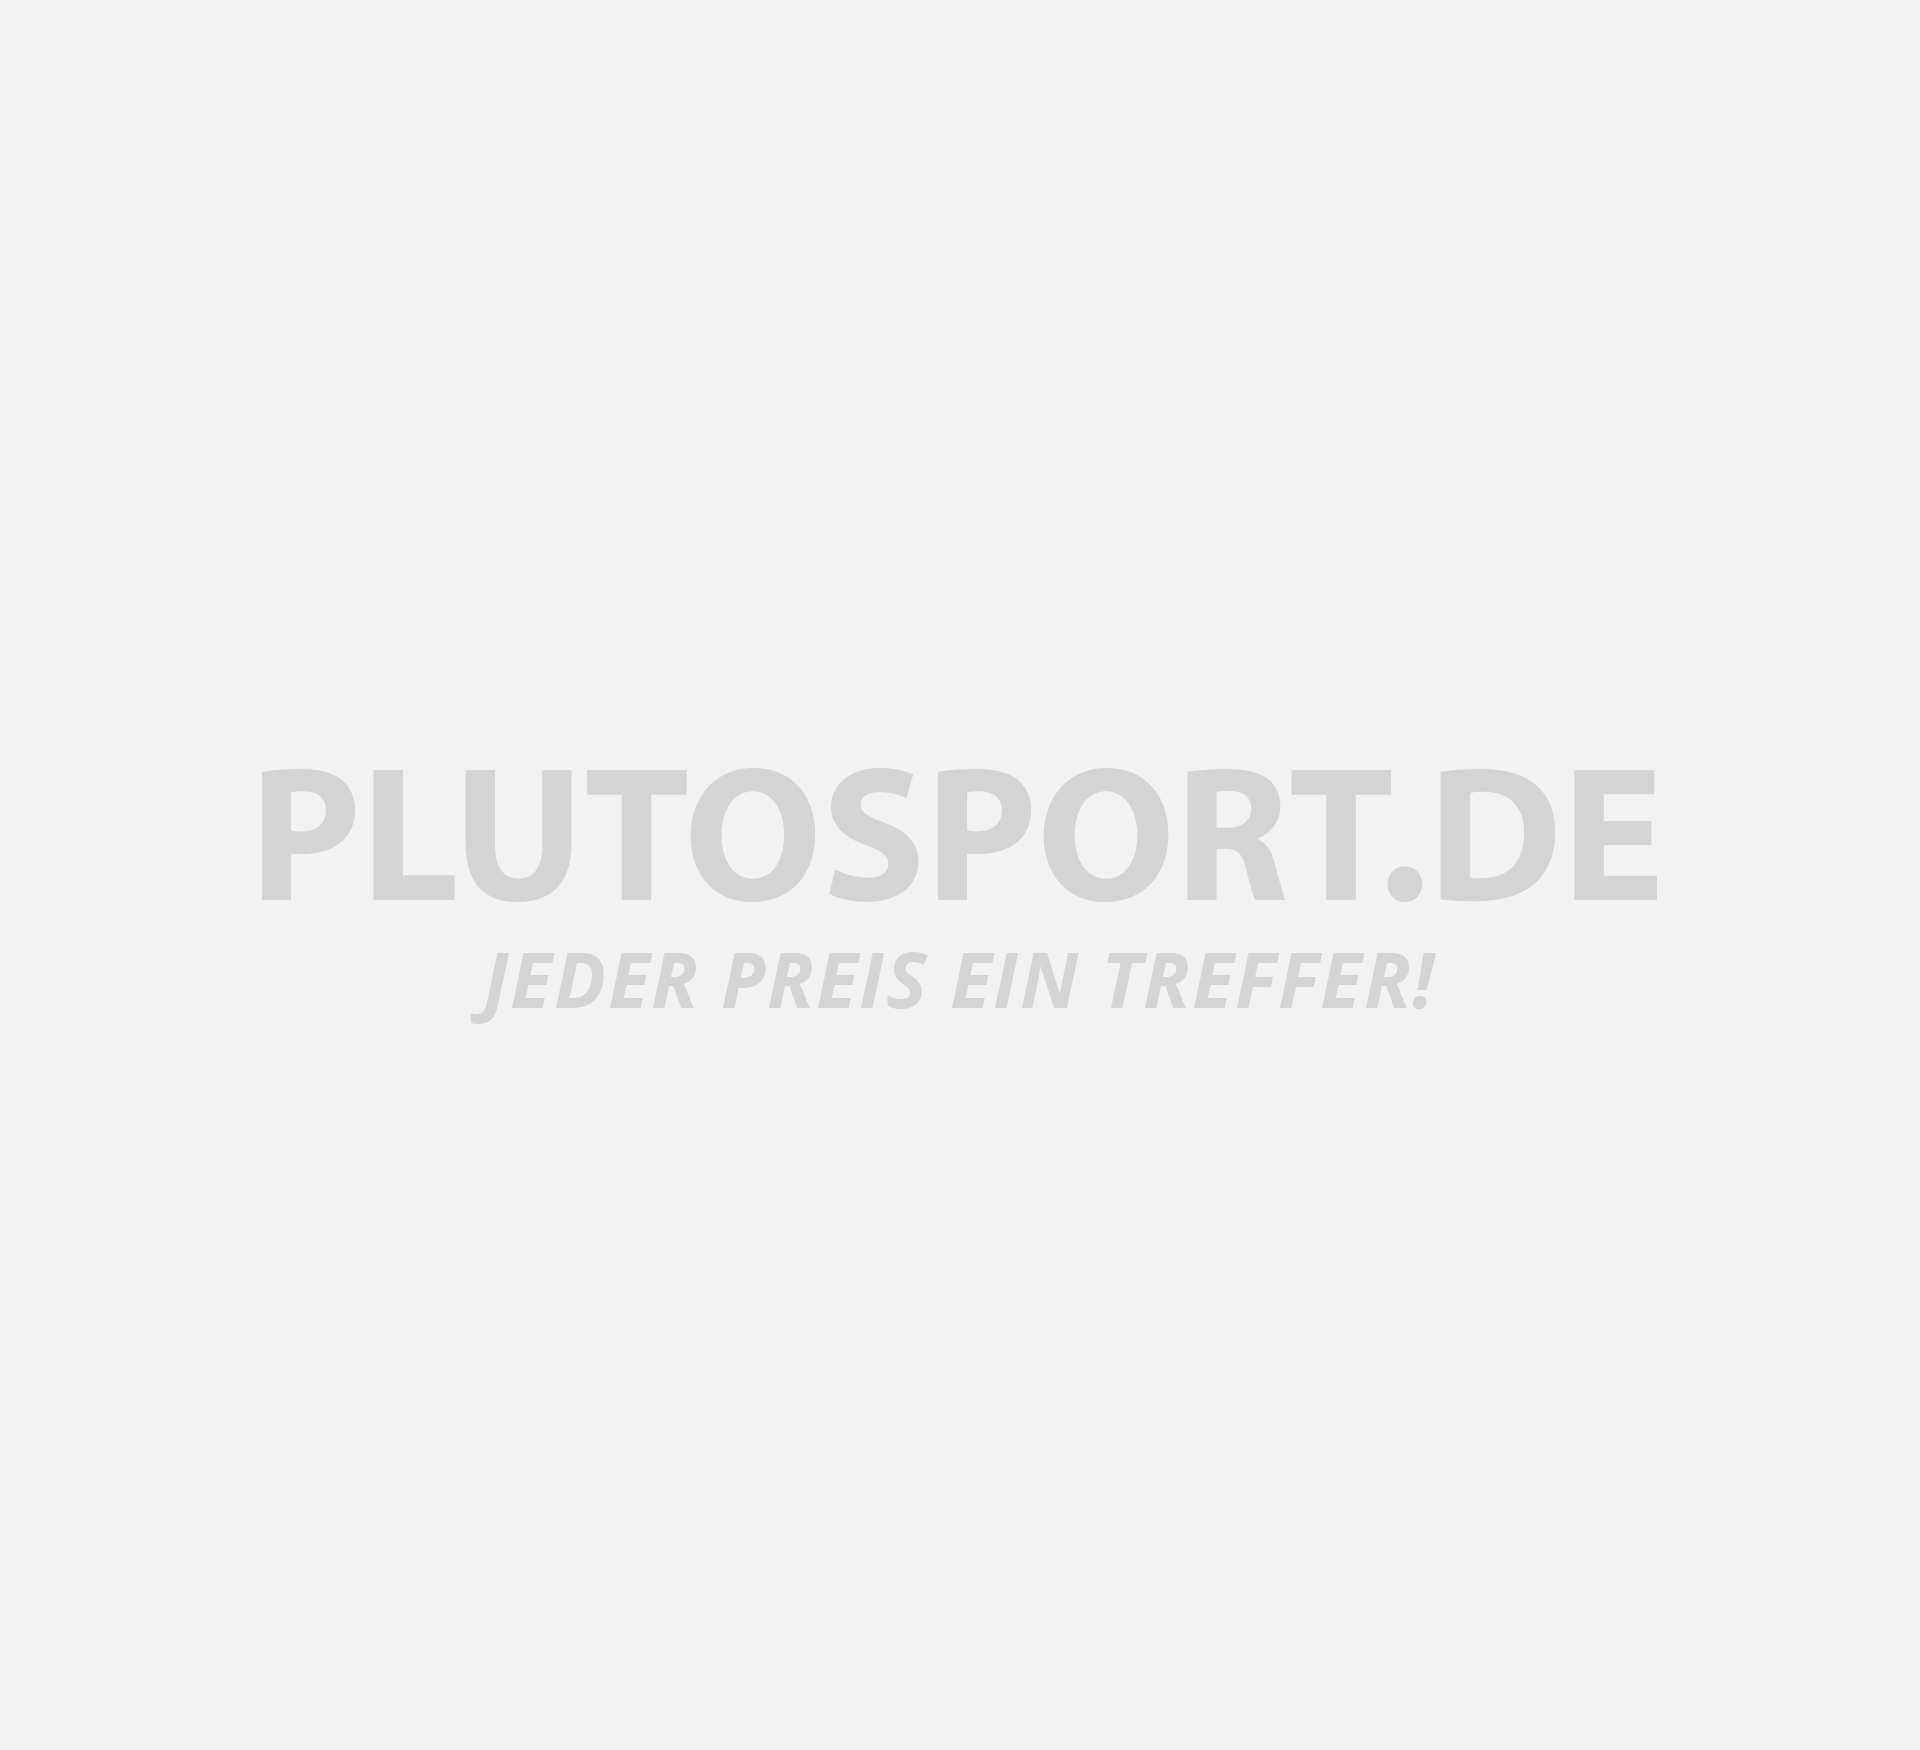 Sportec Light Coachbord + Clip Football